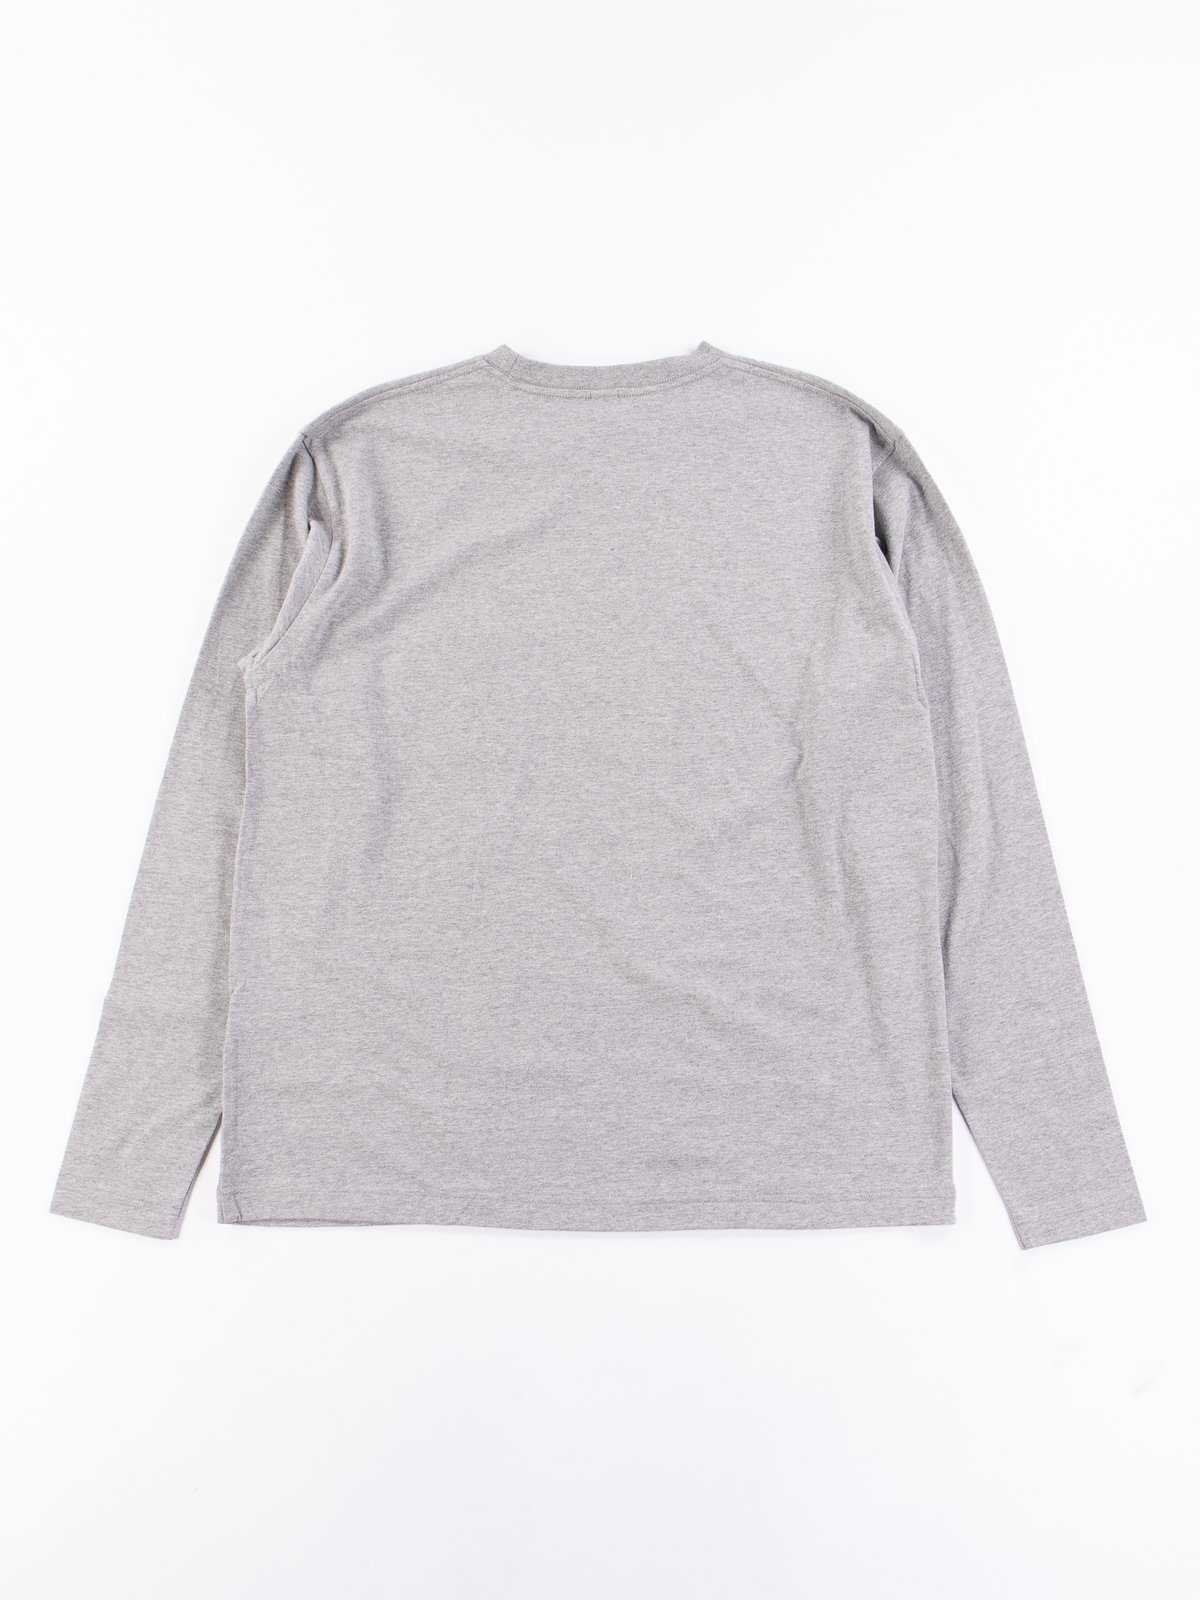 GR7 L/S Crew Neck Pocket Tee - Image 5